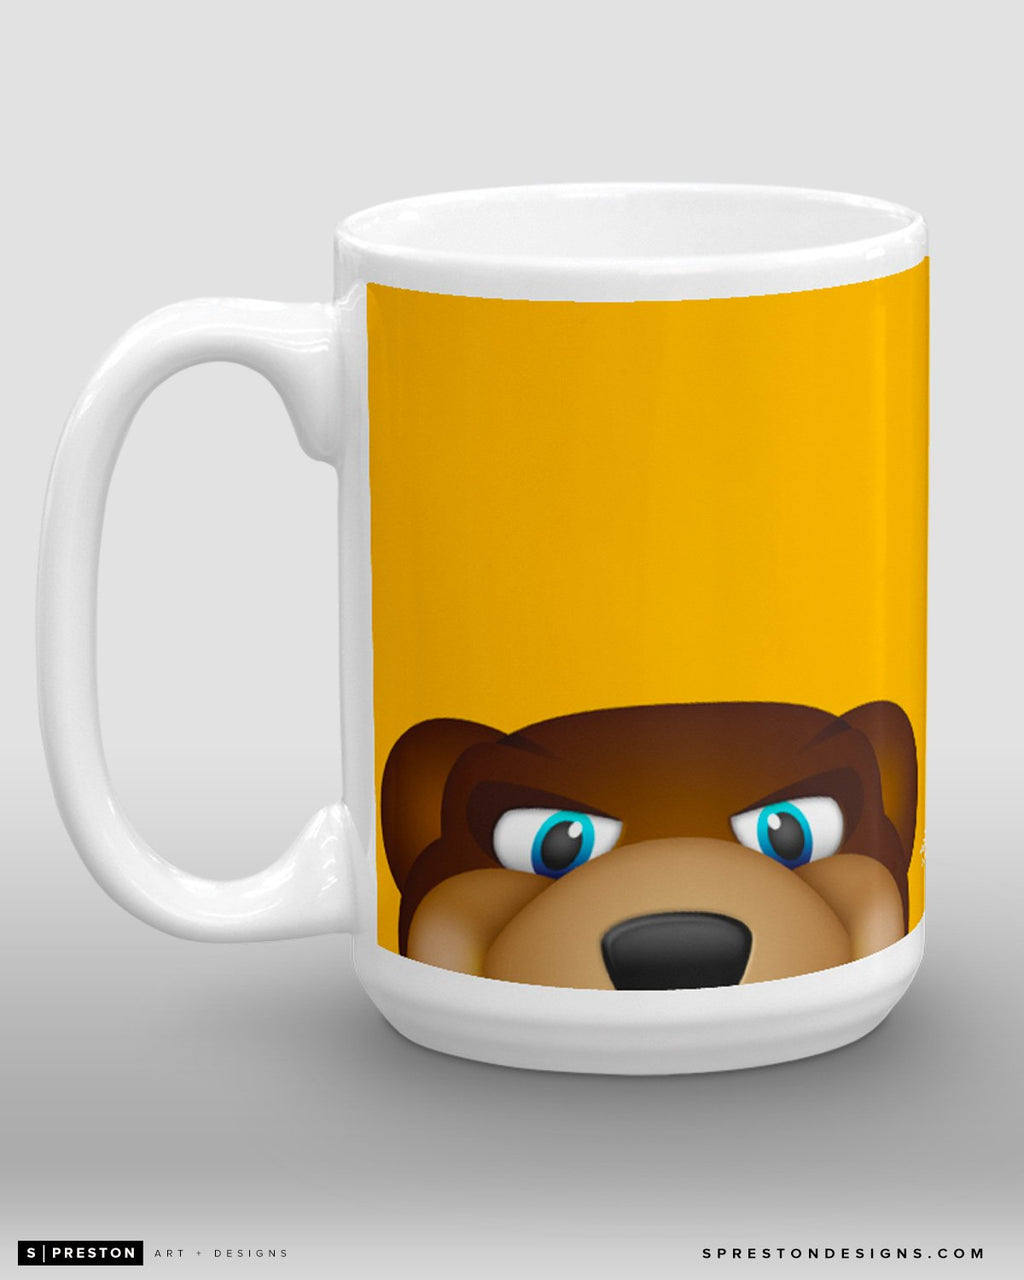 Minimalist Blades Coffee Mug - NHL Licensed - Boston Bruins Mascot